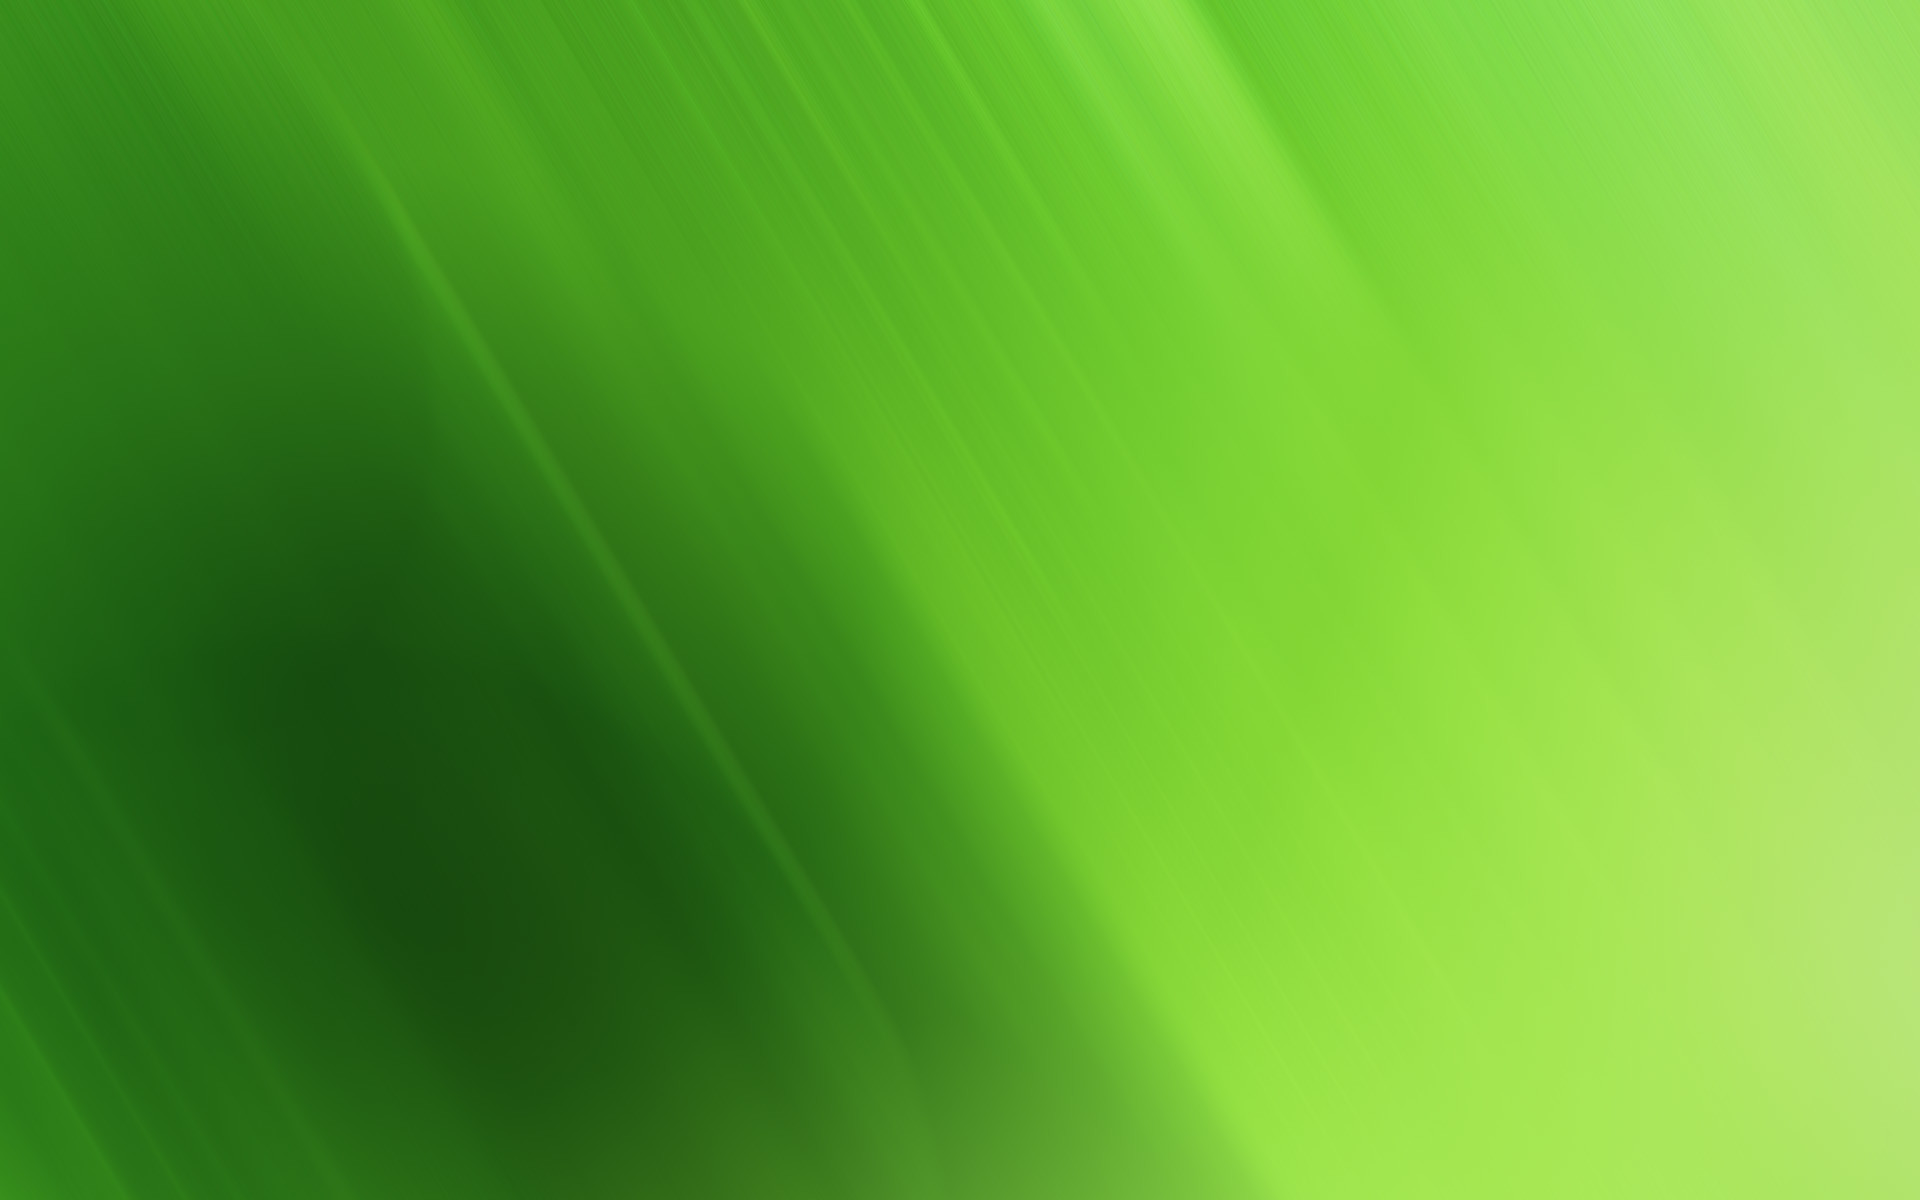 1920x1200 Green Background wallpaper